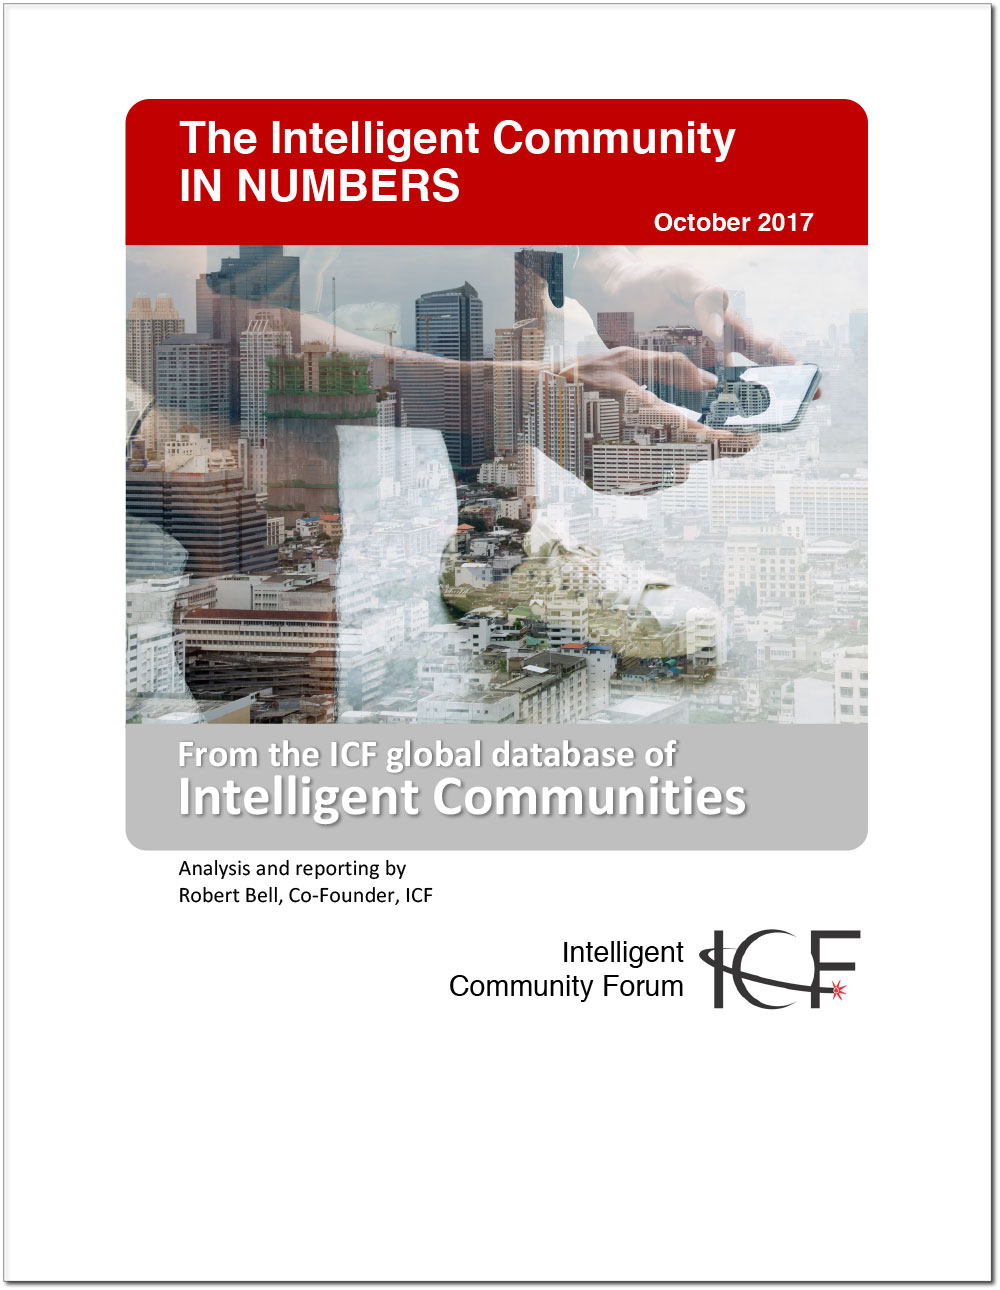 ics-in-numbers-report-cover-80w.jpg